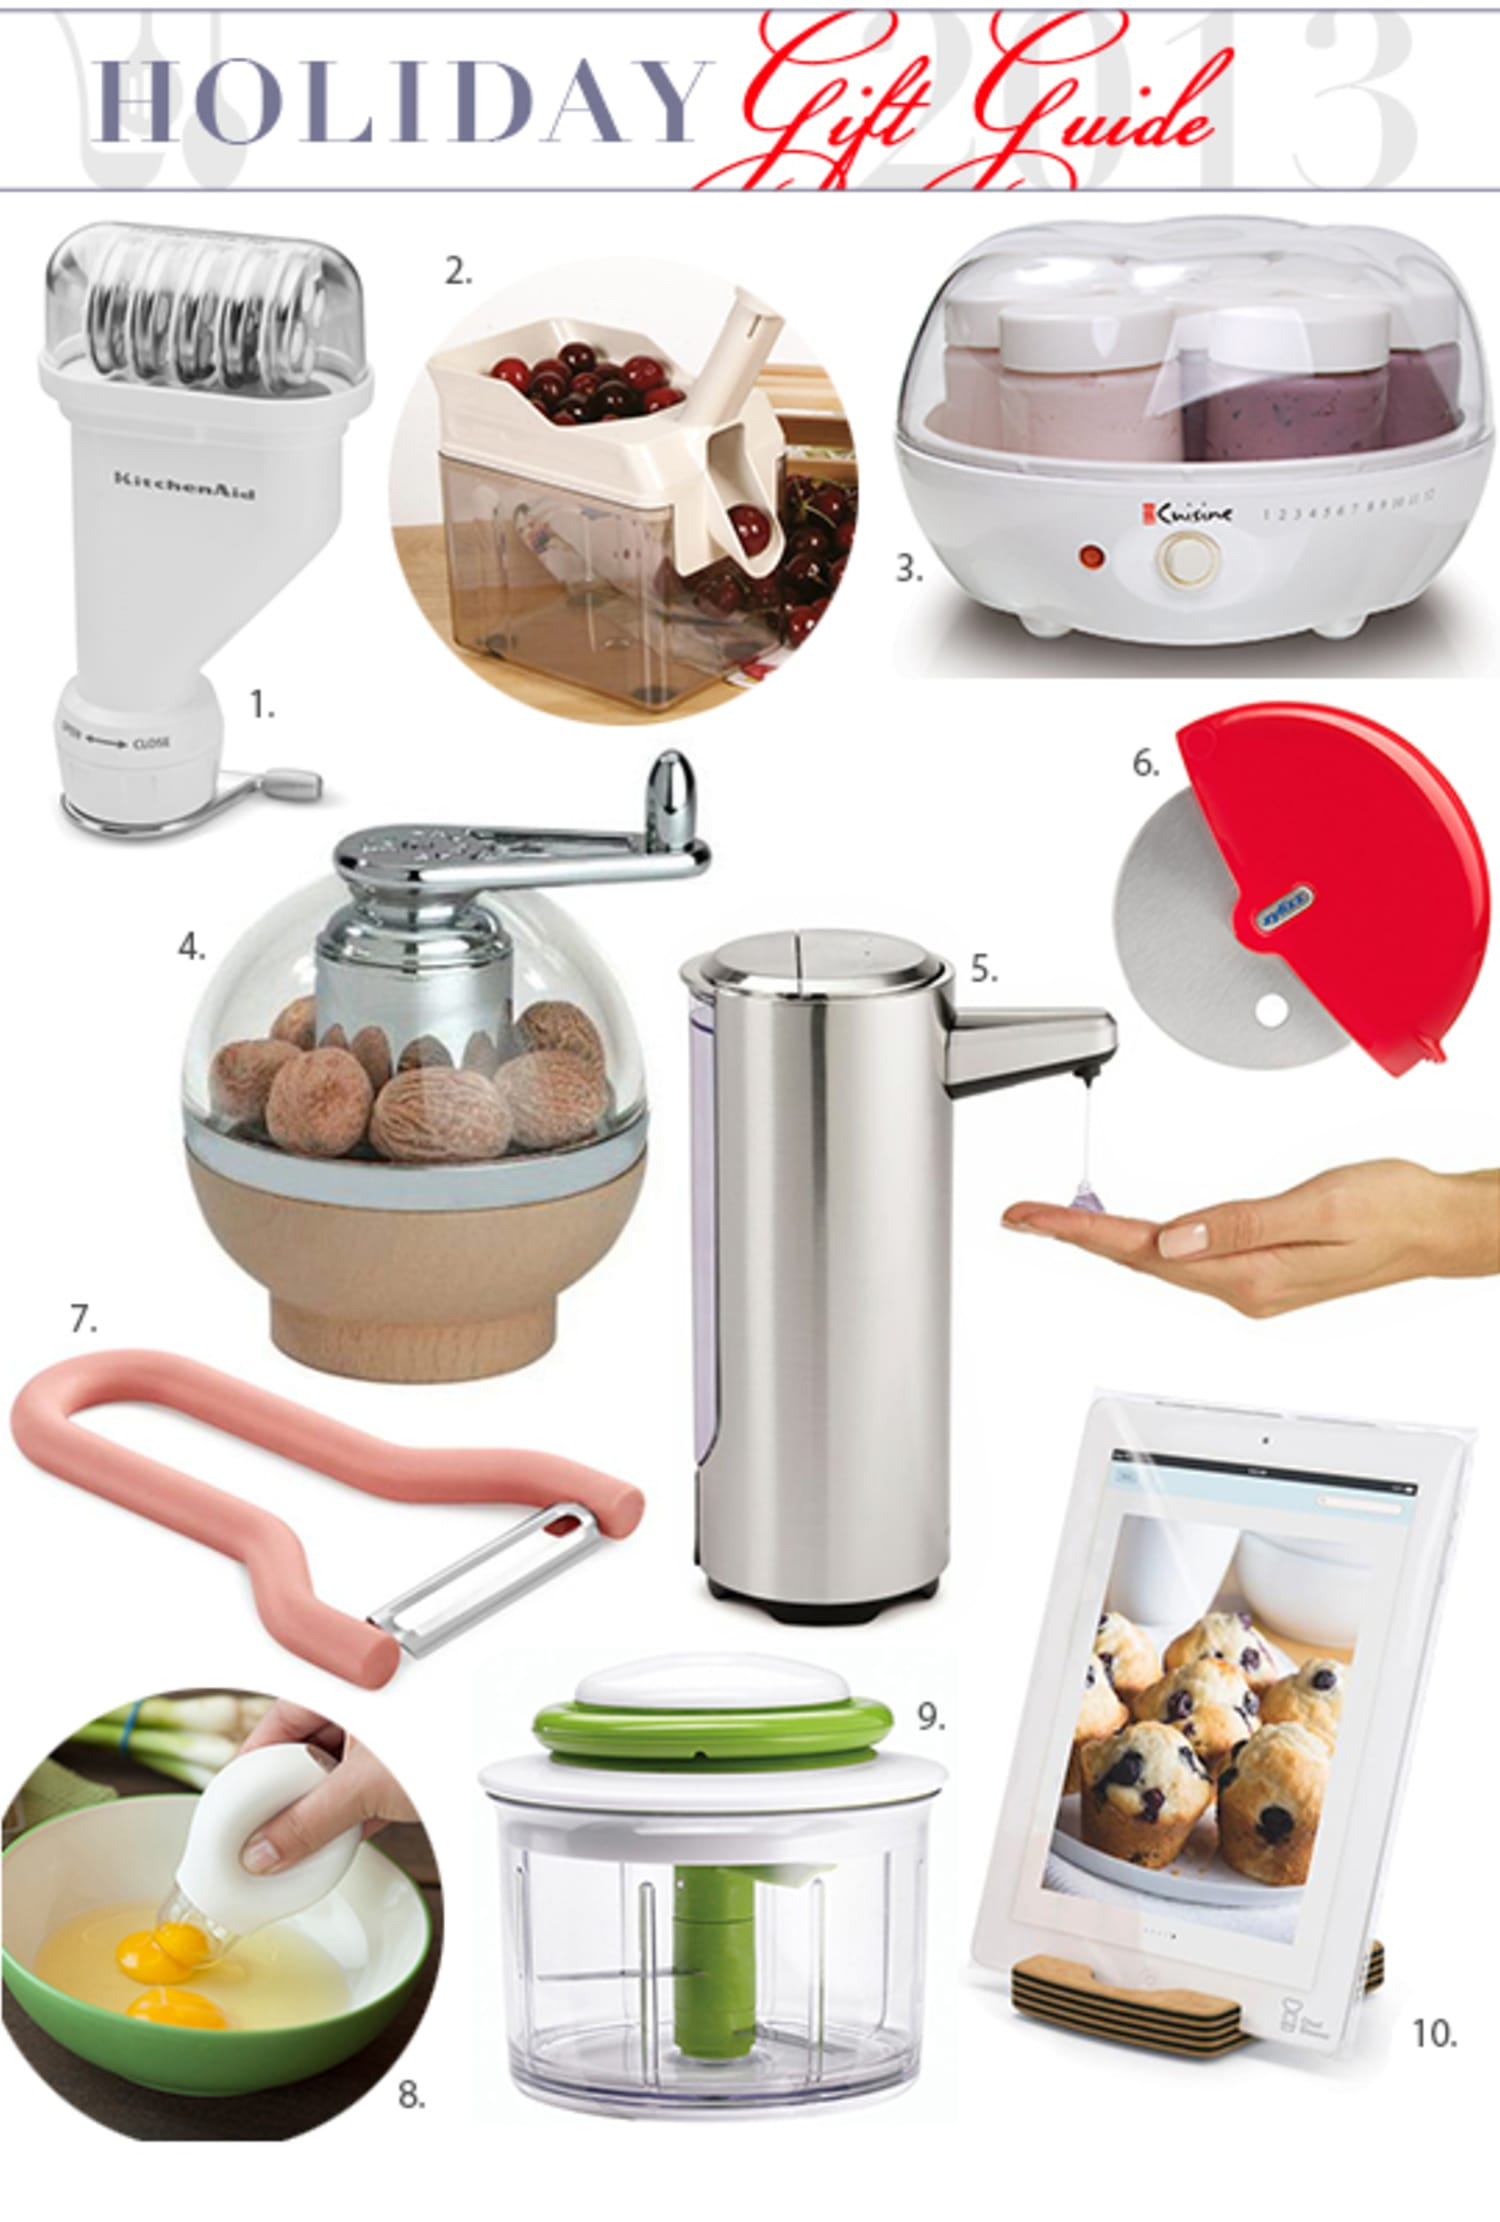 10 Actually Useful Cooking Gadgets | Kitchn